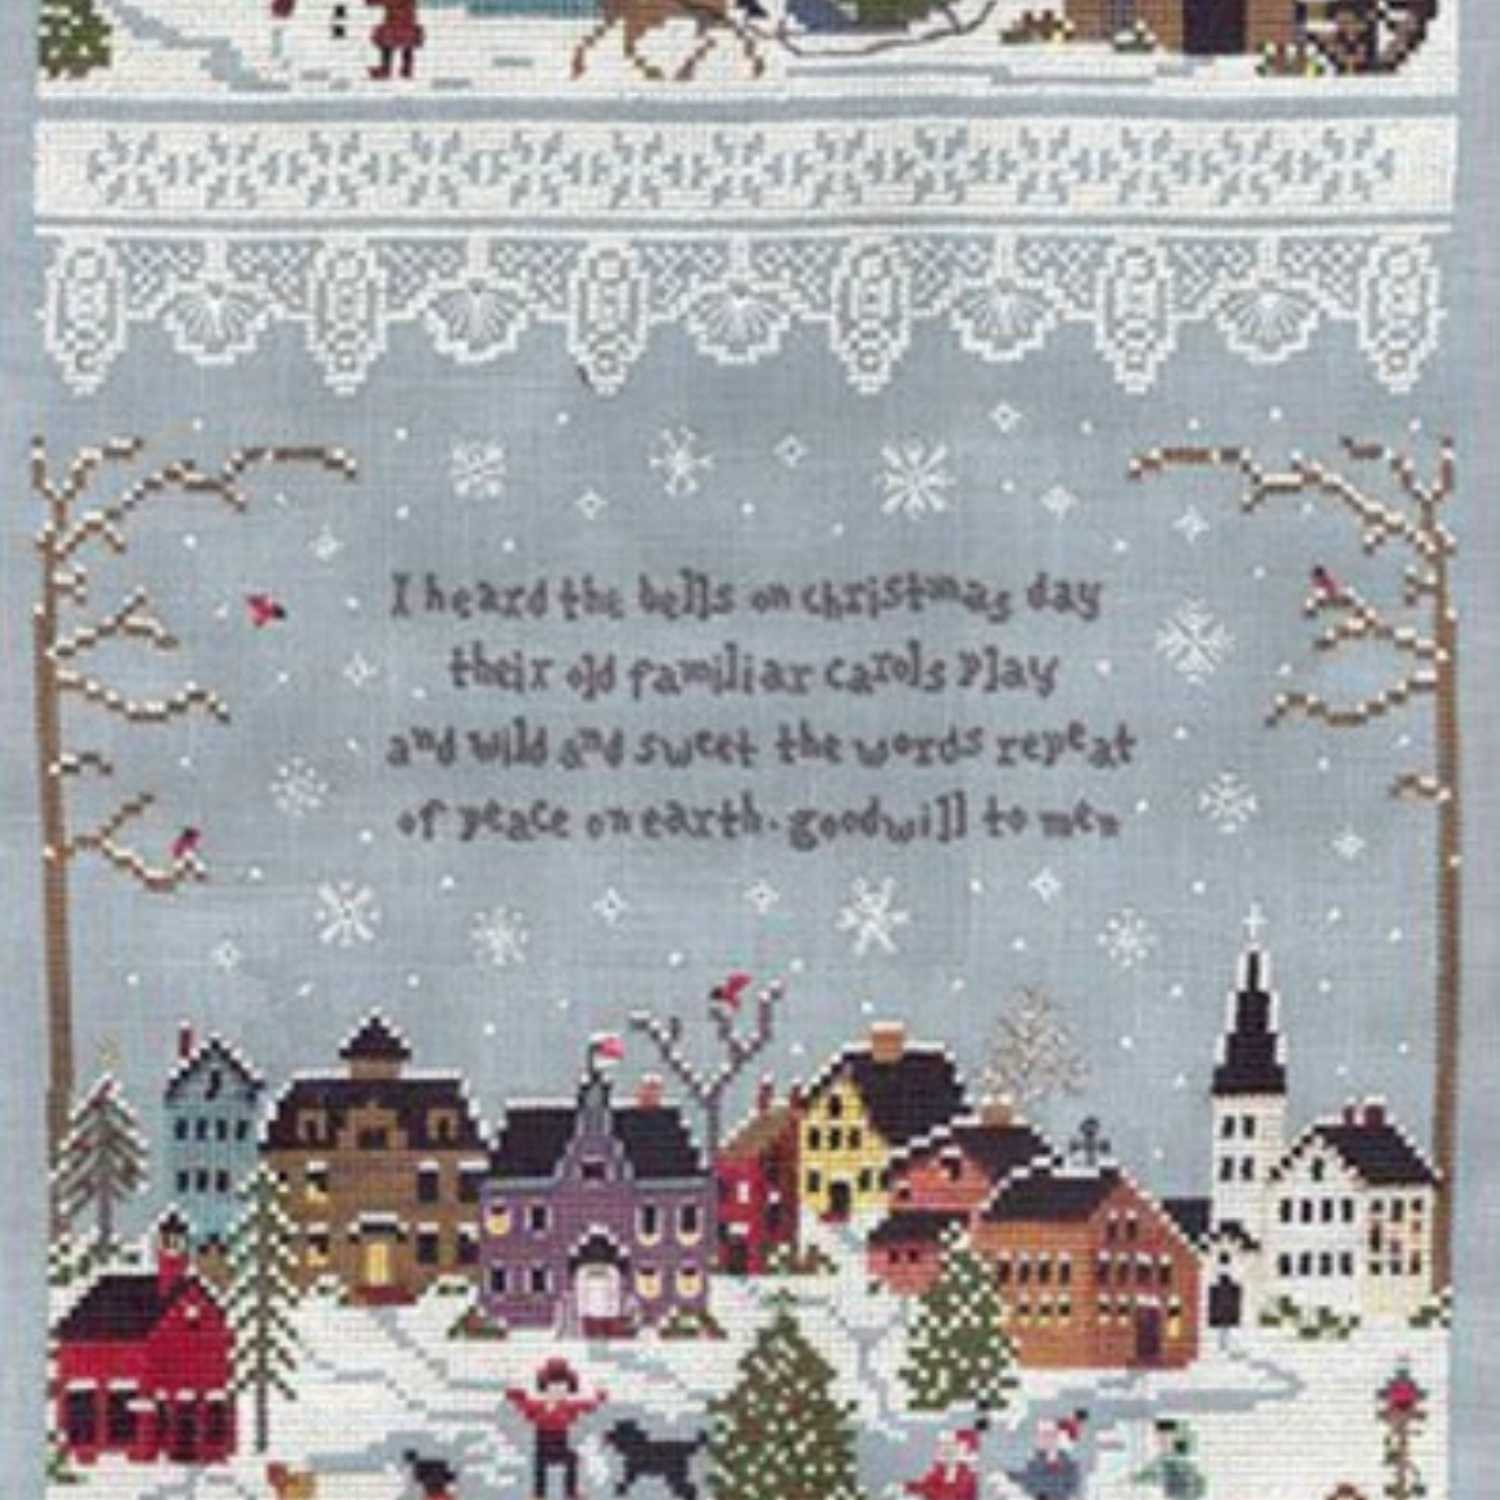 Winter Wonderland pattern